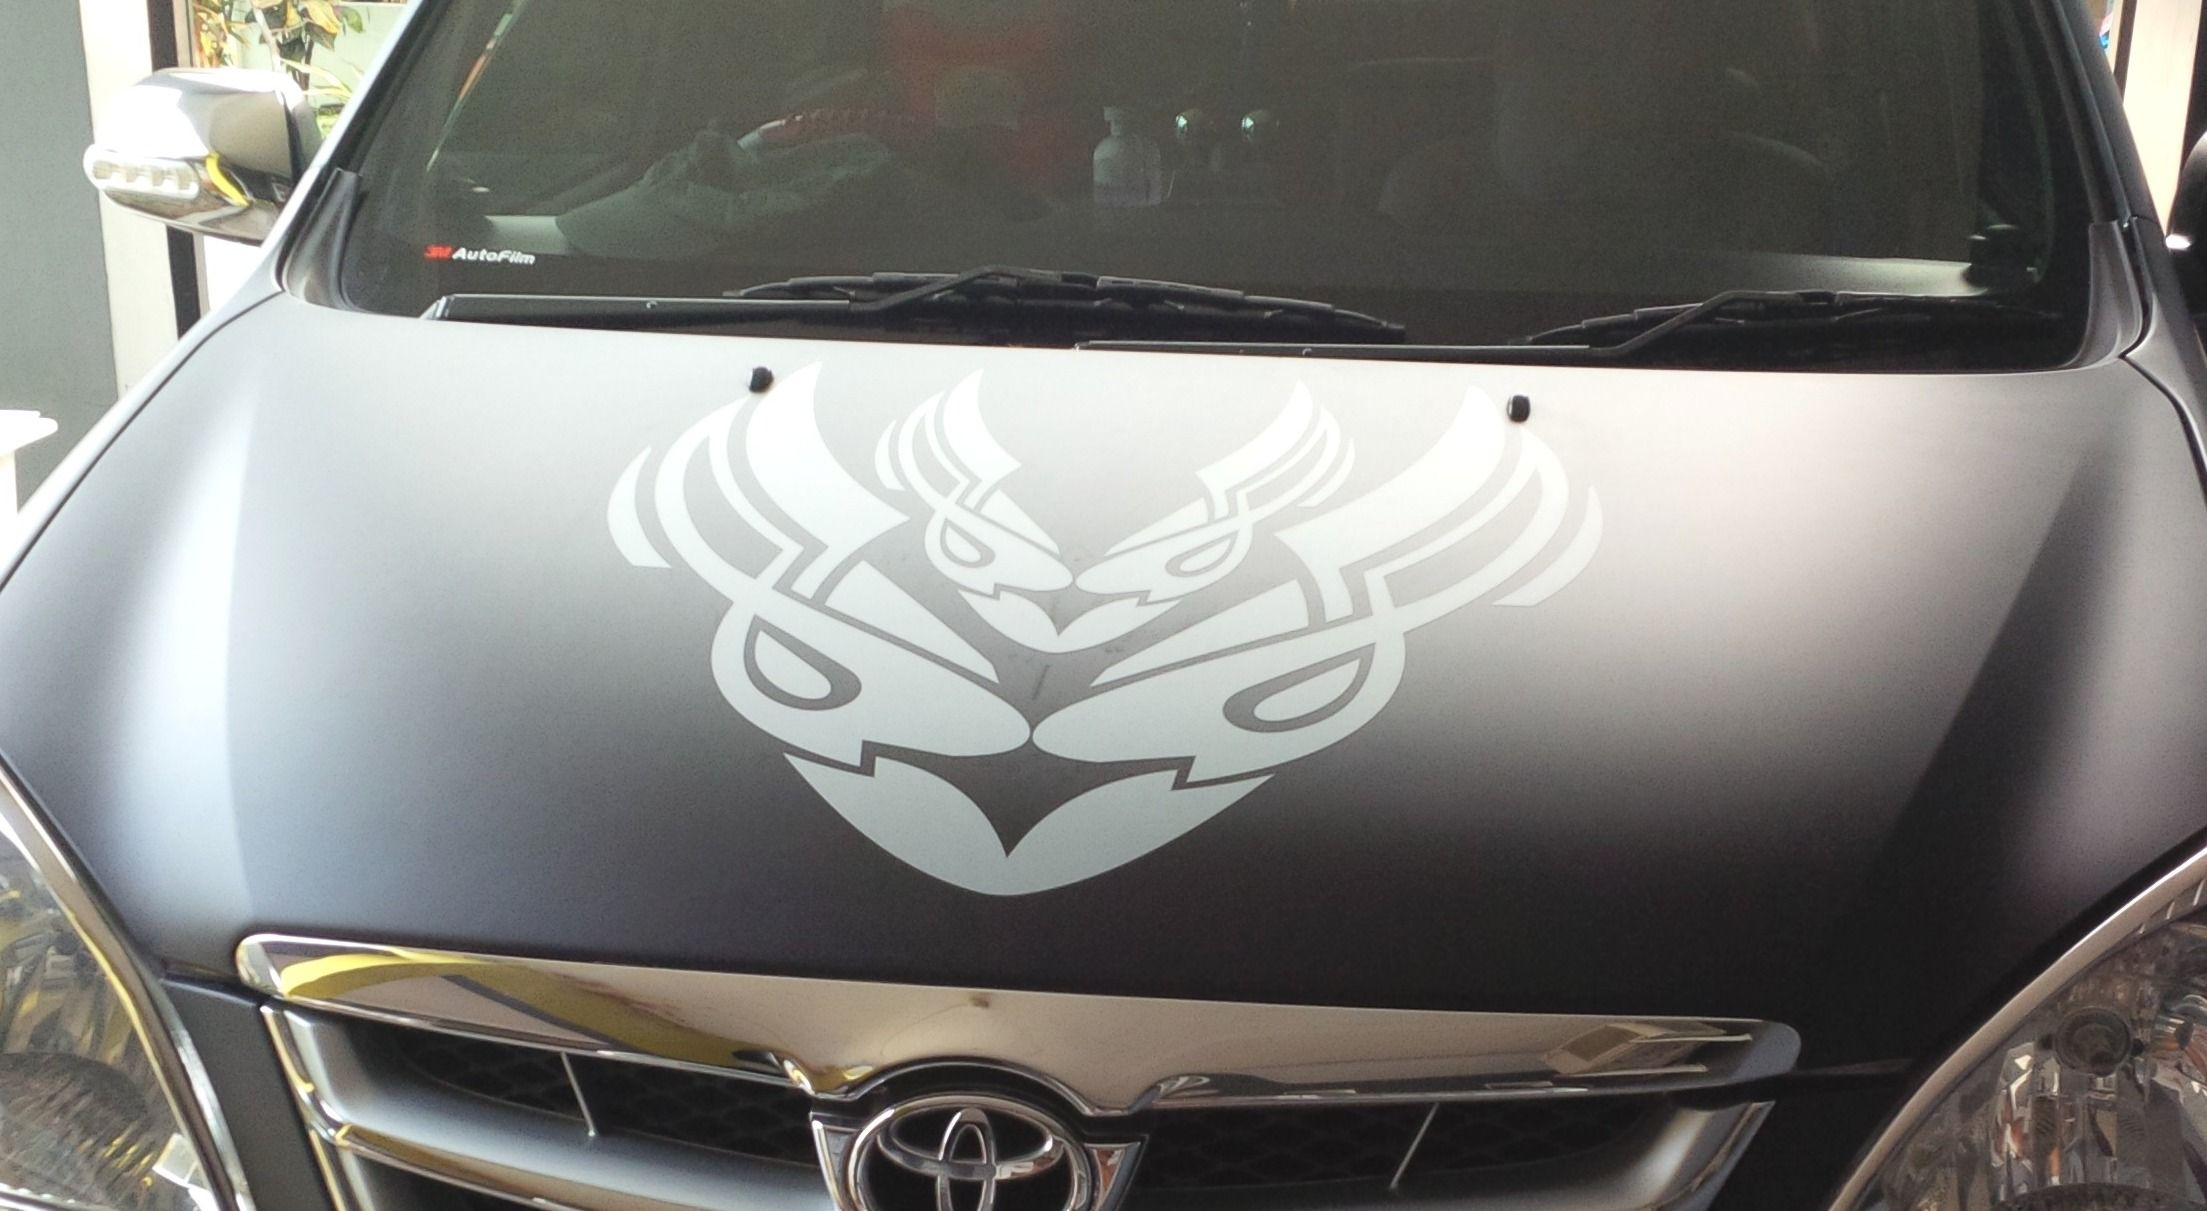 Toyota avanza silver custom grey mate sticker on hood black mate wrapping hood